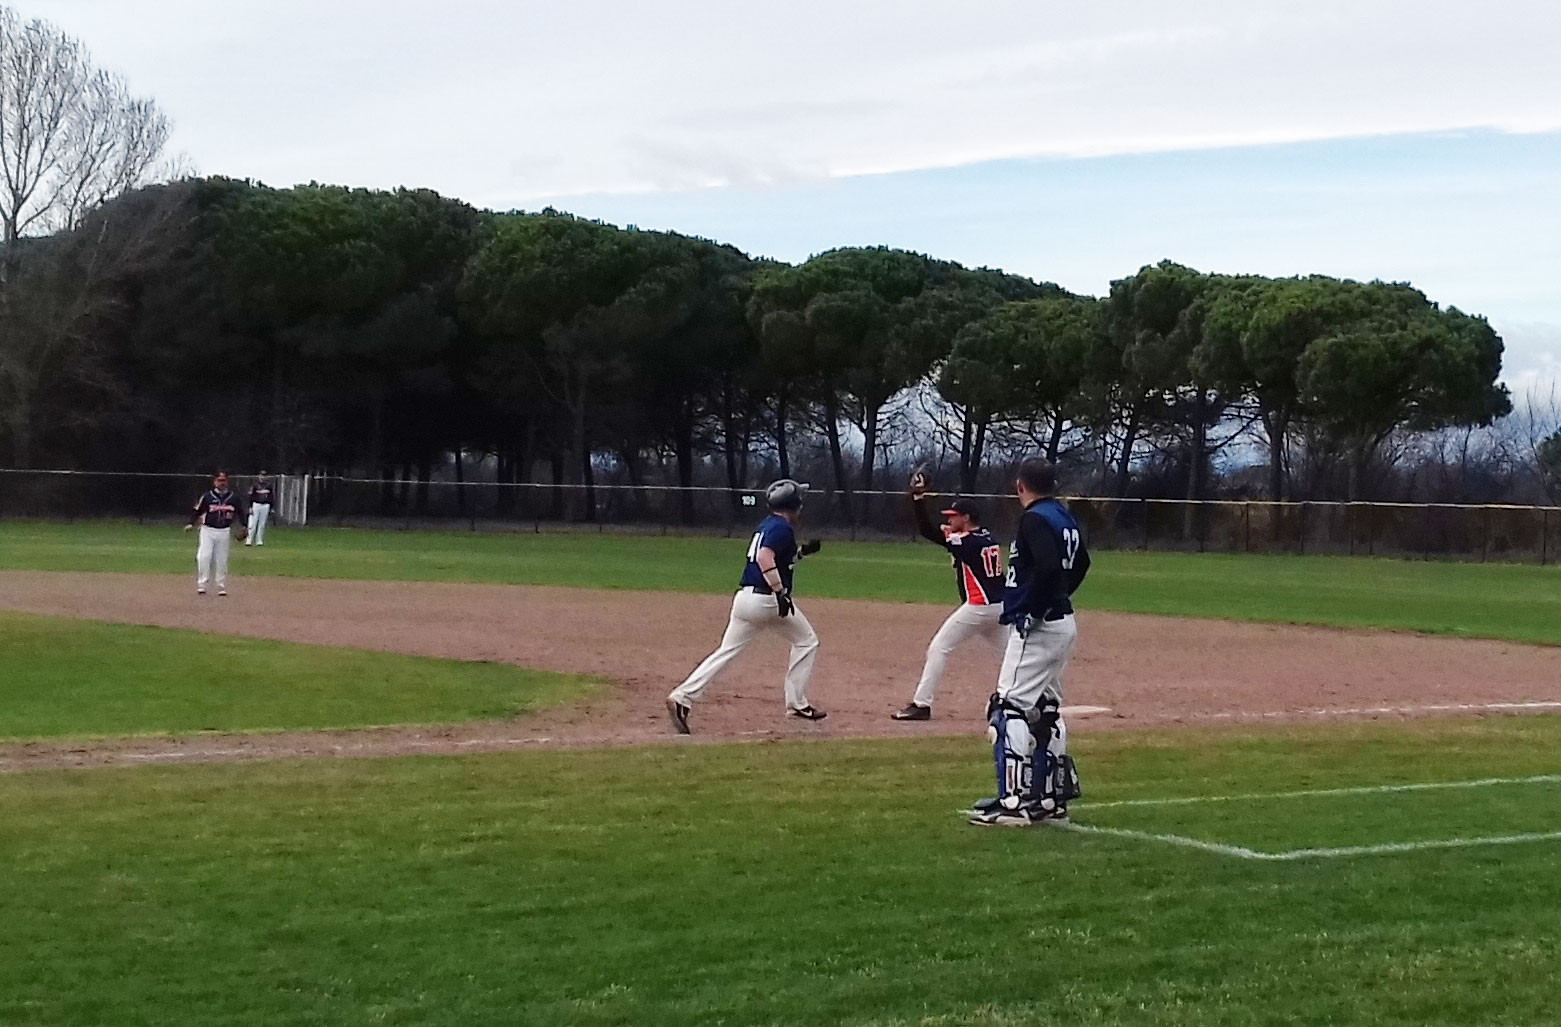 albatros-baseball-runner-mtp-vs-lgm